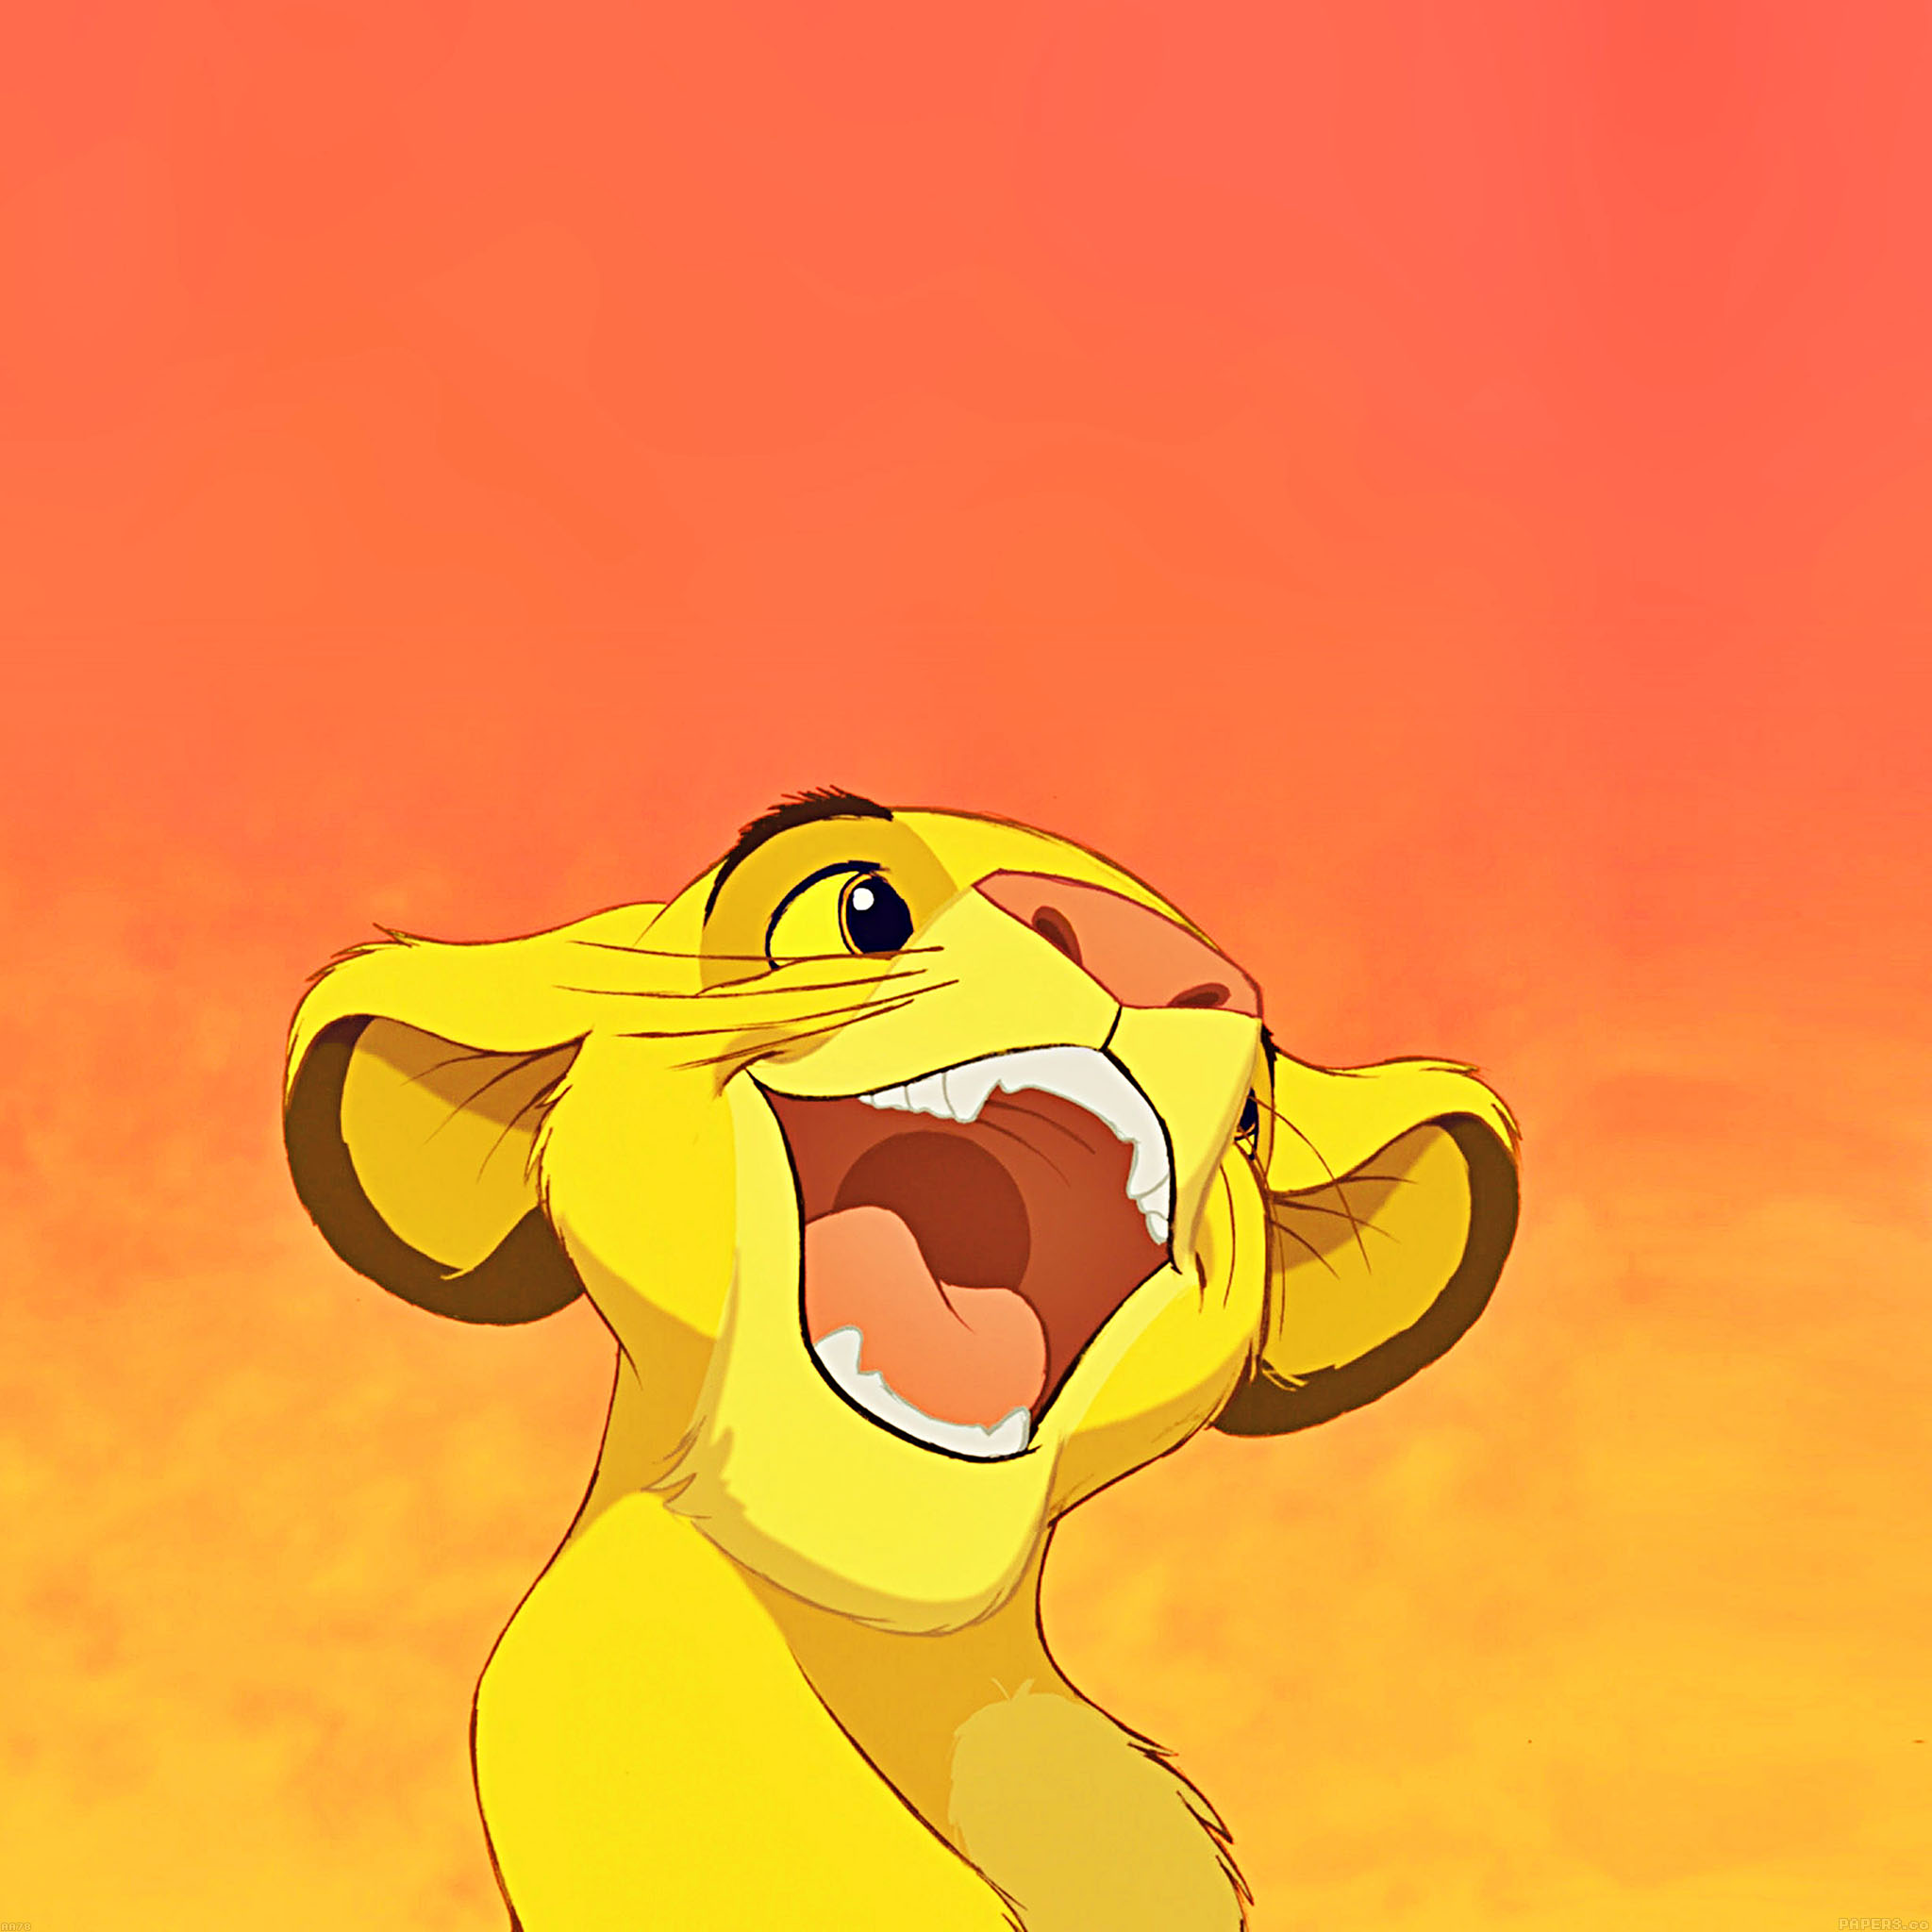 Sinon Cute Wallpaper Aa78 Wallpaper Disney Simba Lionking Smile Illust Papers Co